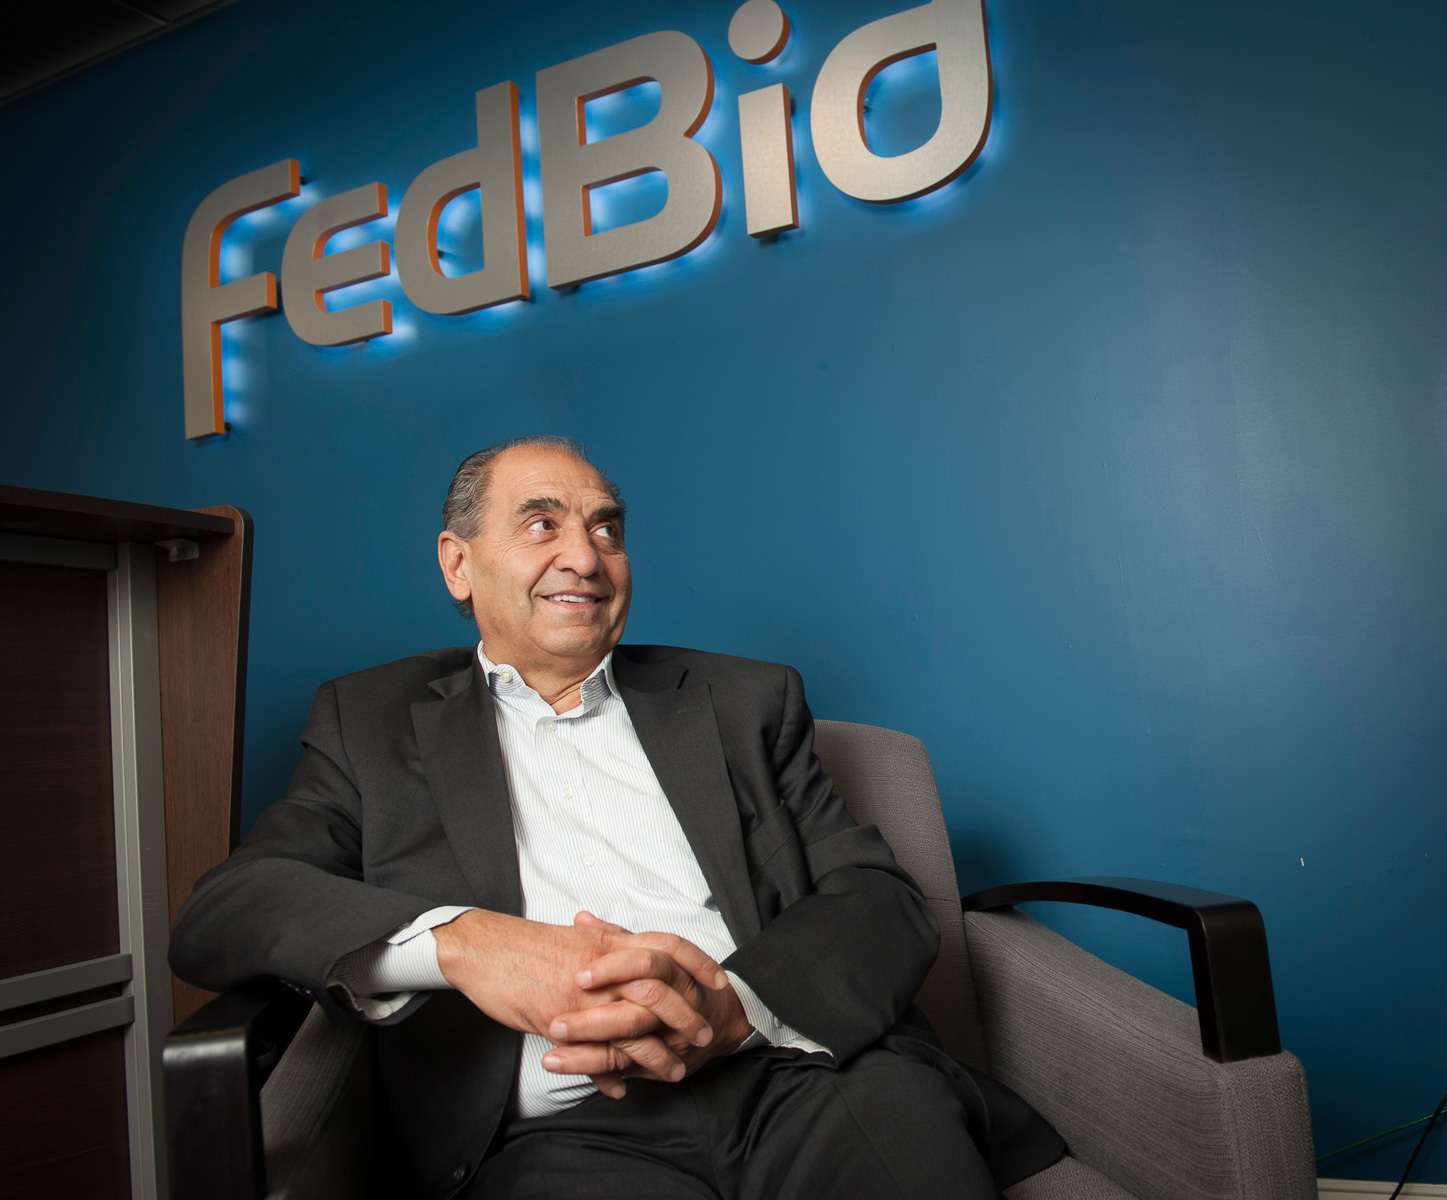 Vienna, VA – February 26, 2014: Portrait of Ali Saadat at FedBid a company that specializes in reverse auctions for construction contracts by the federal government. Contractors bid down and the government accepts the lowest bid. CREDIT: Vanessa Vick for The New York Times